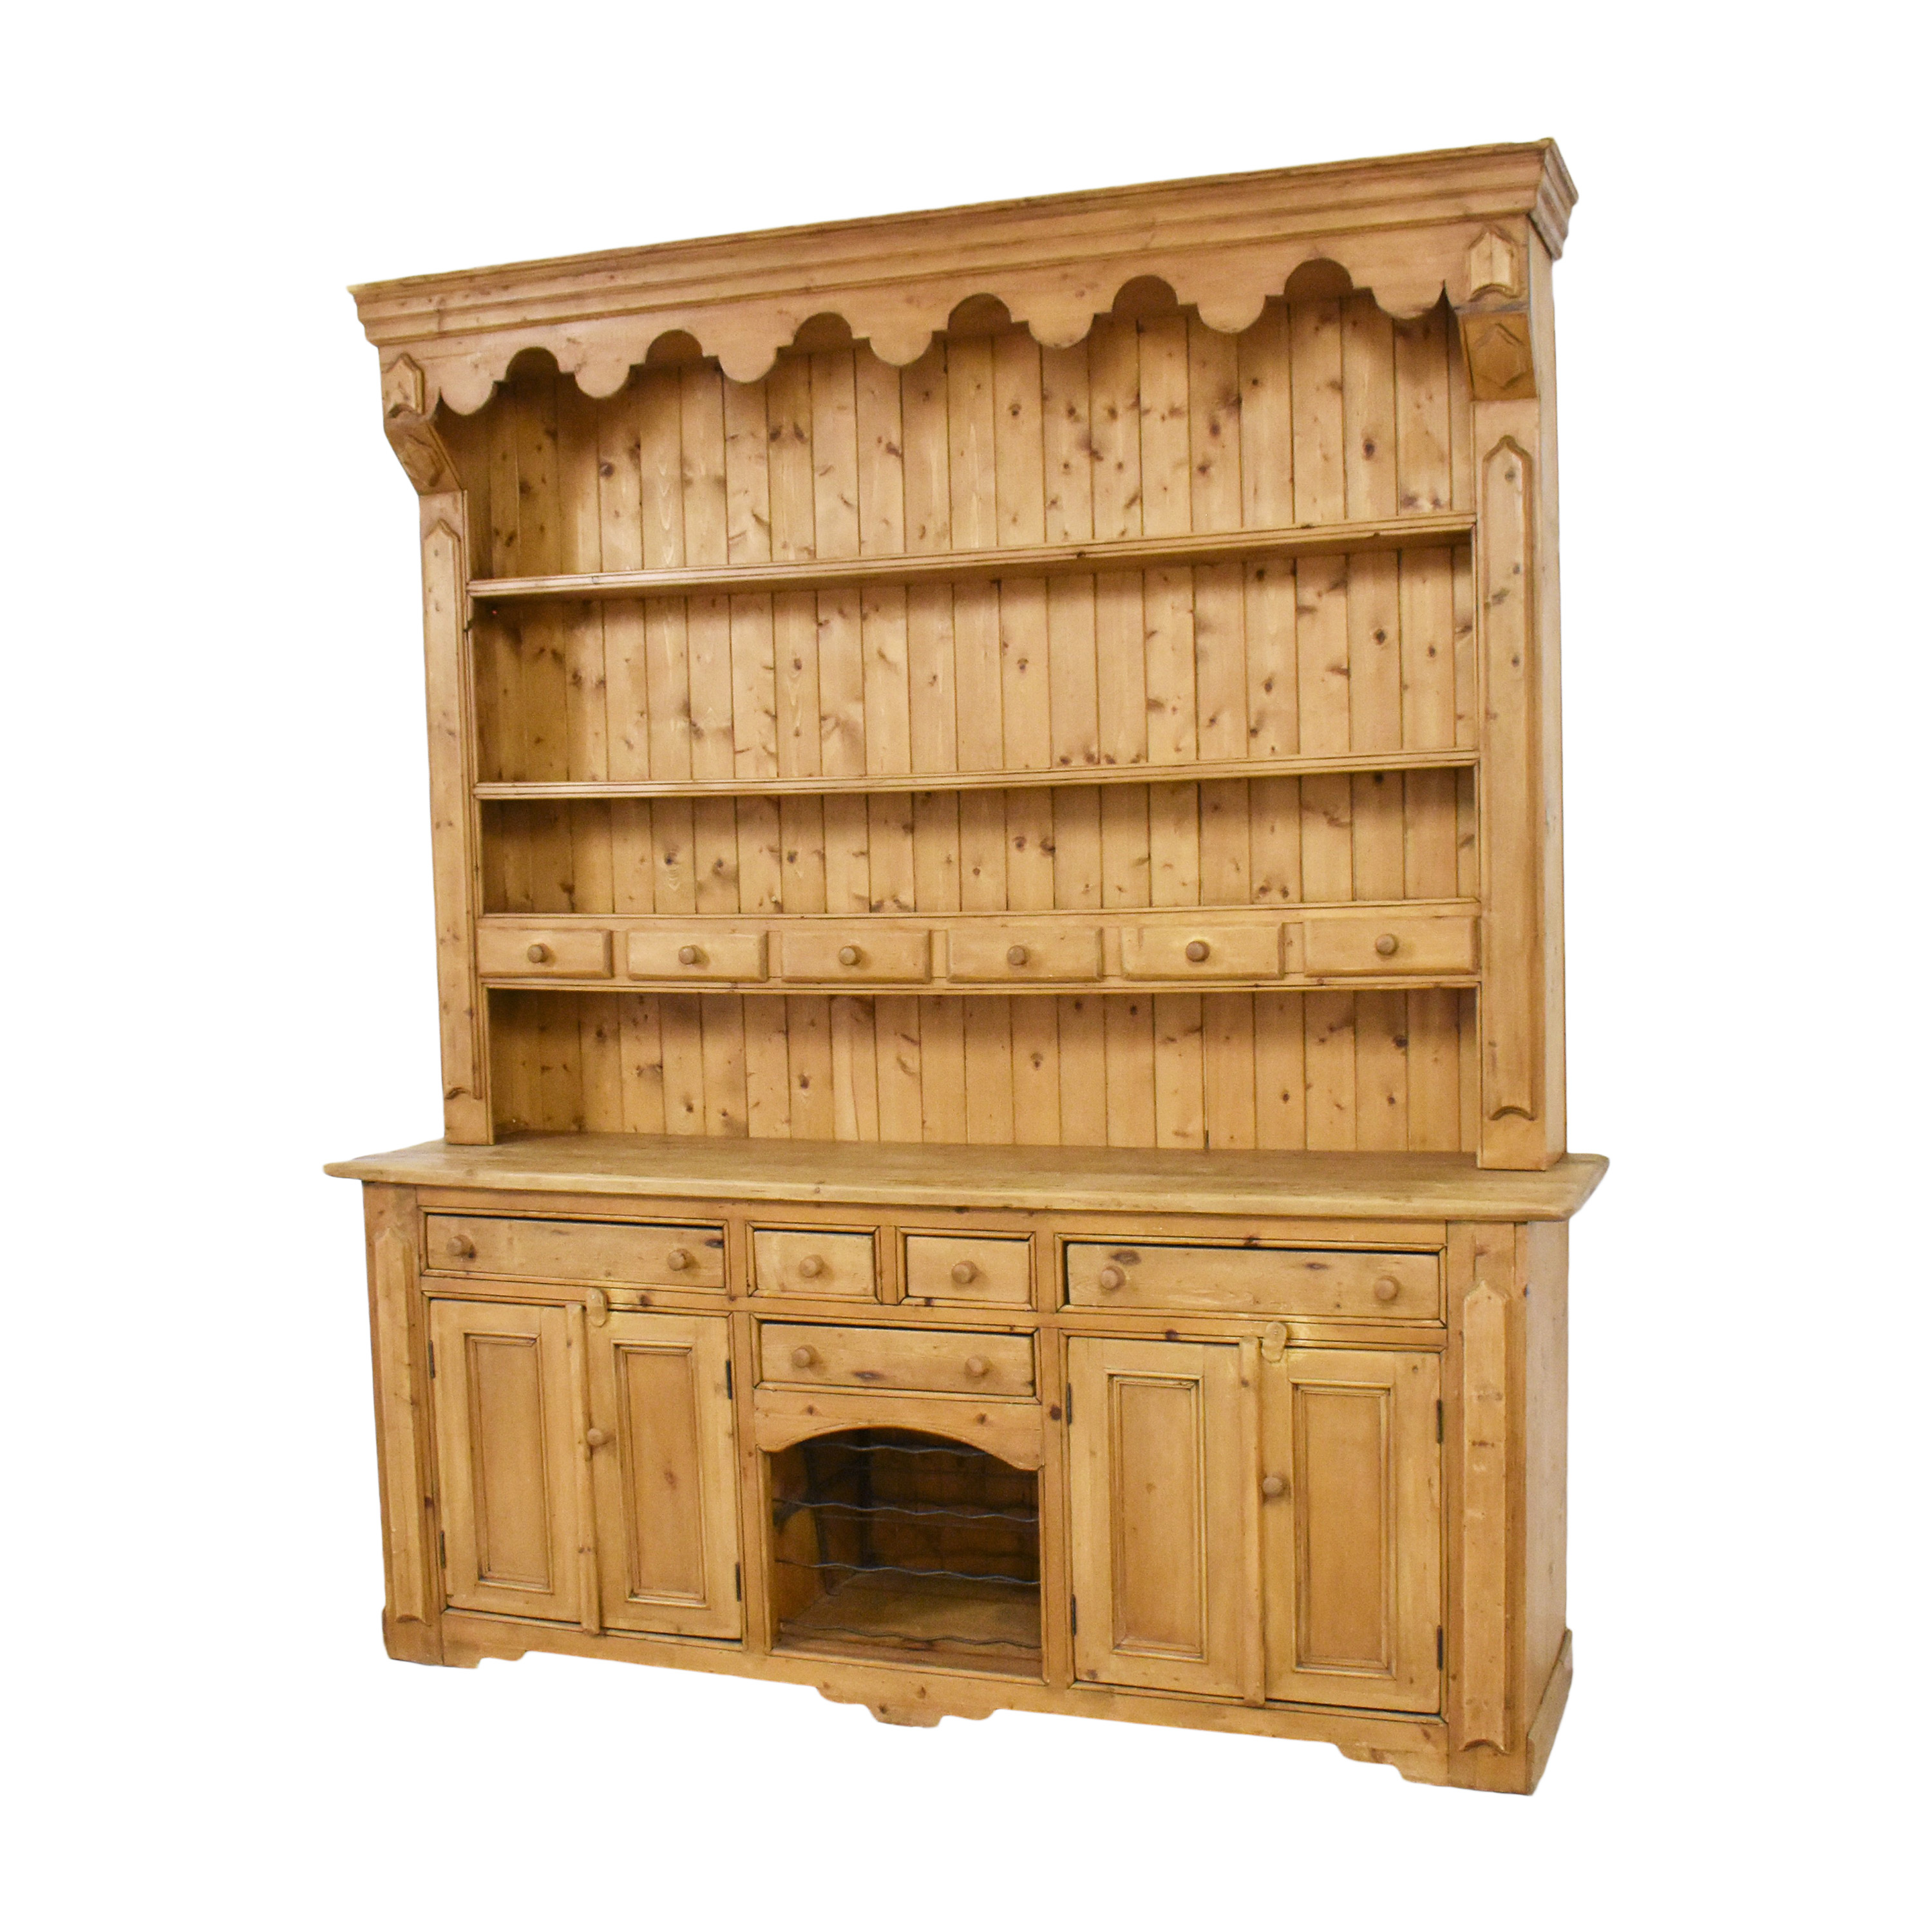 ABC Carpet & Home ABC Carpet & Home Sideboard with Hutch discount